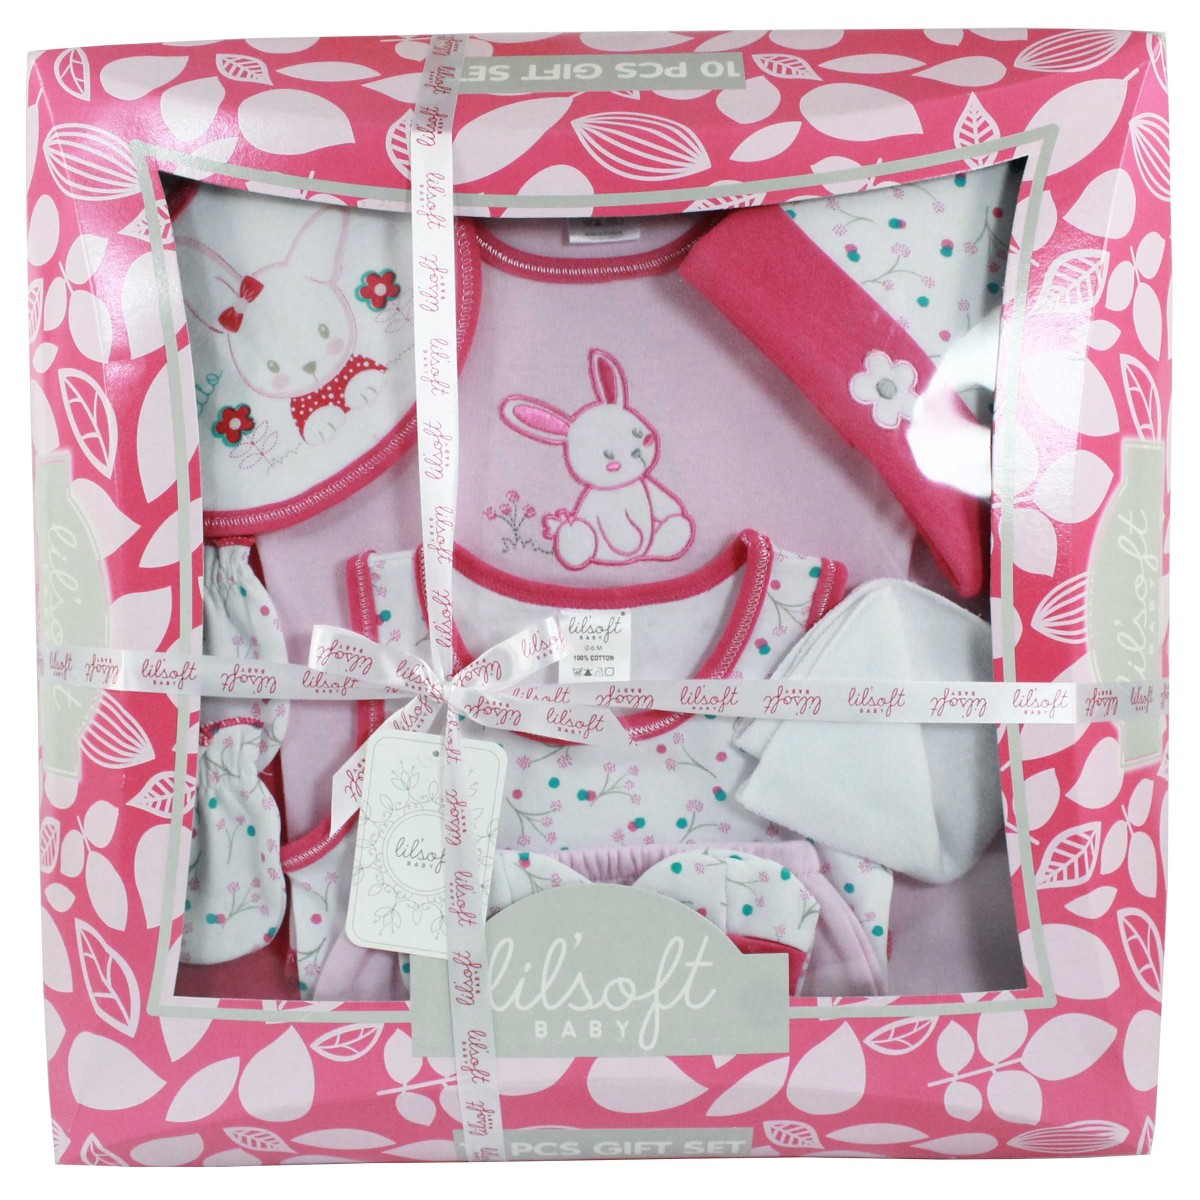 Baby Gift Set Kl : Baby bodysuit pieces gift set for sets